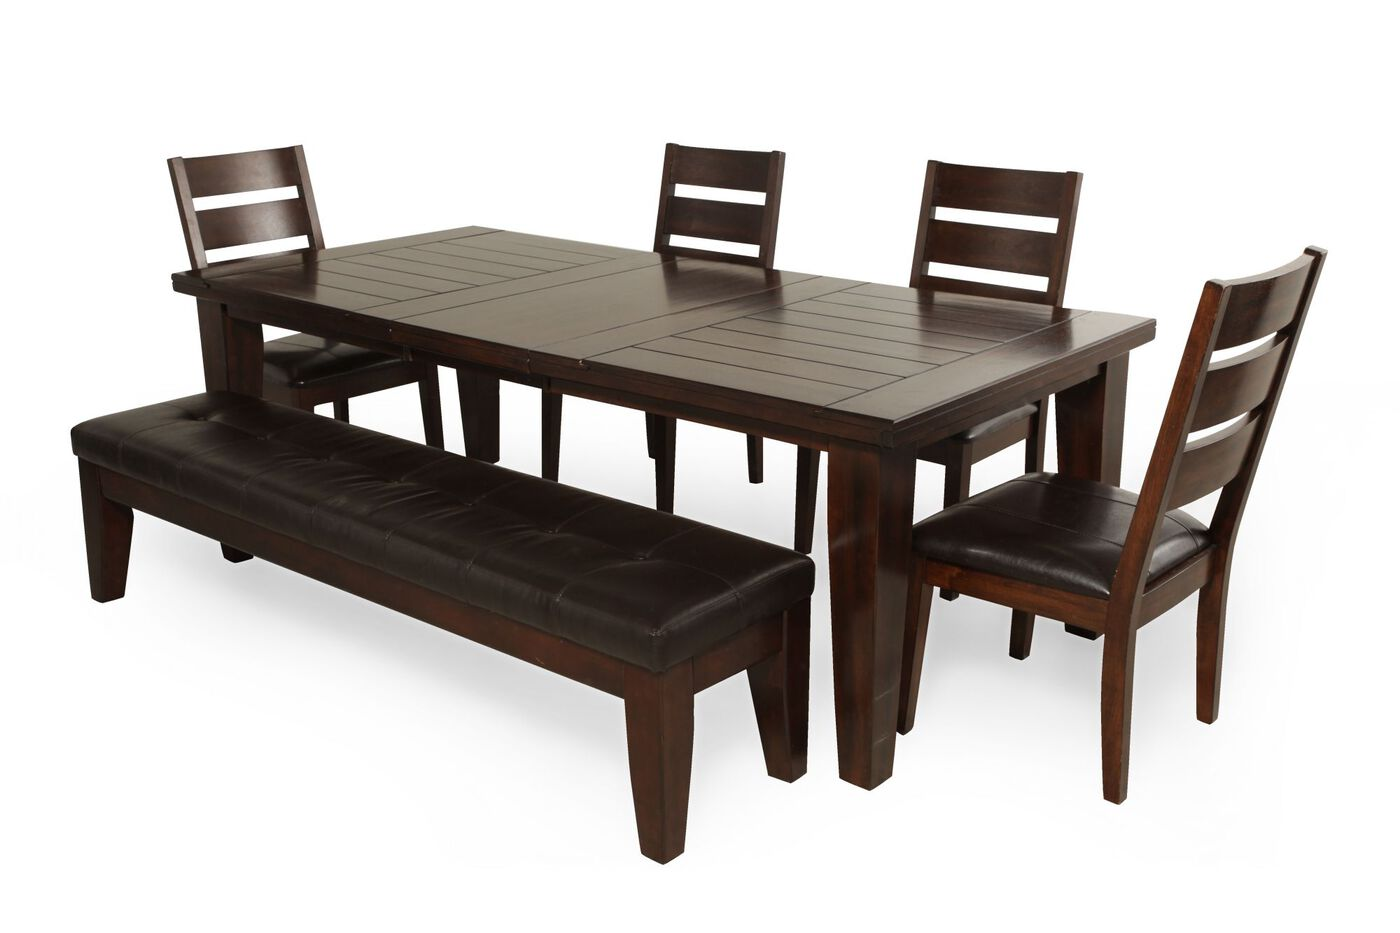 Mathis Brothers Dining Tables Mathis Brothers Dining  : ASH D4420476PC from honansantiques.com size 1400 x 933 jpeg 79kB